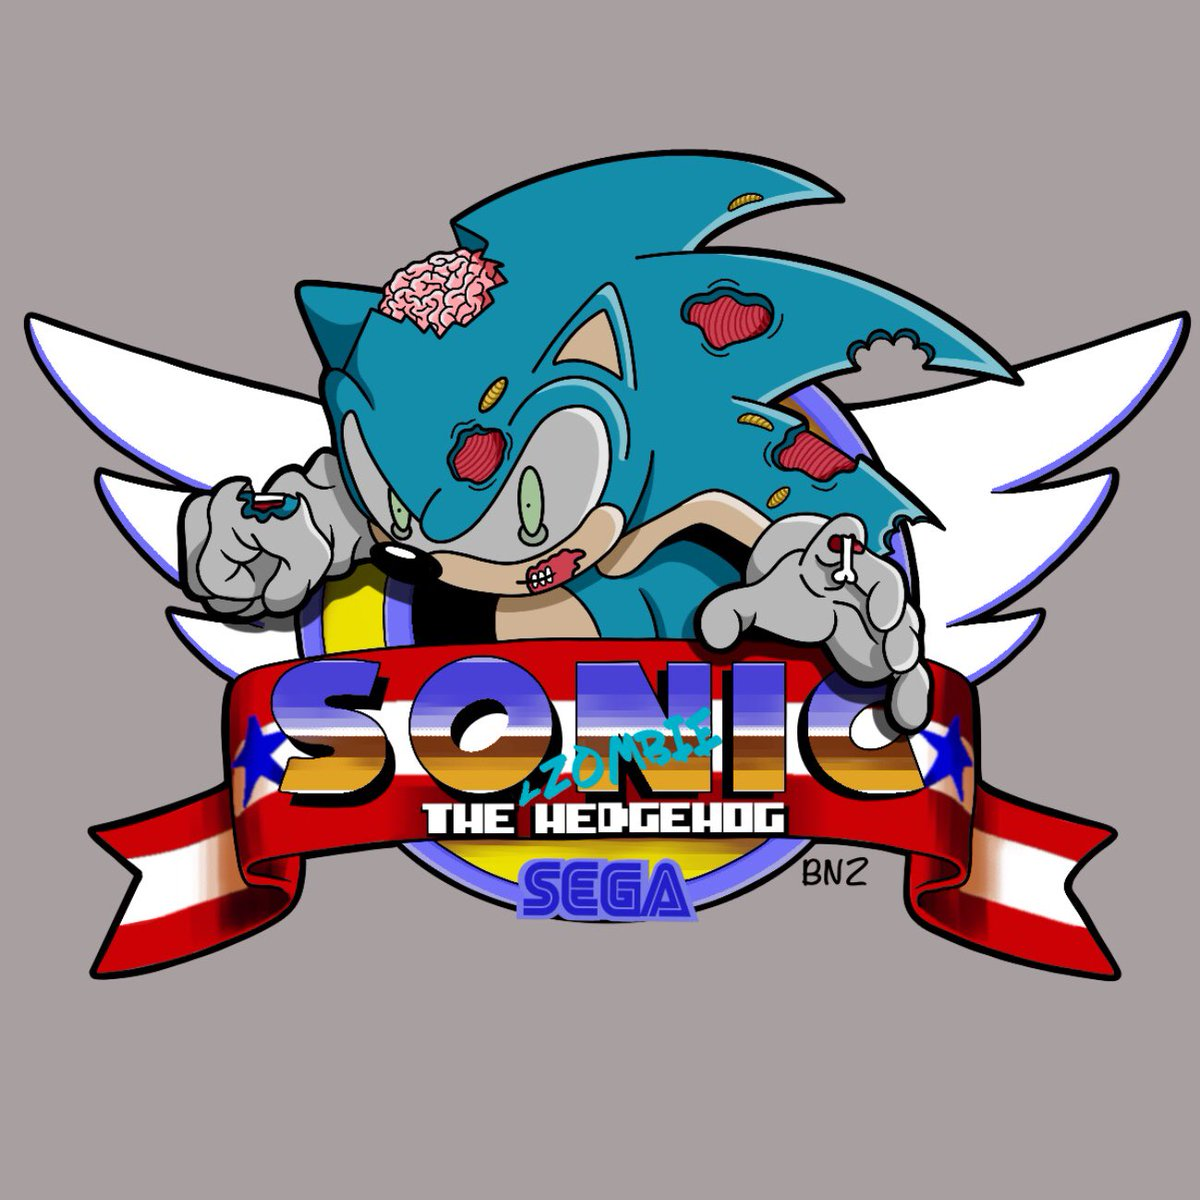 off to see sonic movie tomozI am very excited. Who else is off to see it? #sonicthehedgehog #sonicmovie #sonic #hedgehog #sonicthehedgehogmovie #sonic2020 #sonicmovie2020 #soniczombie #zombie #zombies #sega #sonicvideogame #sonicthezombie #mashup #cartoonmashup #sonicmashup